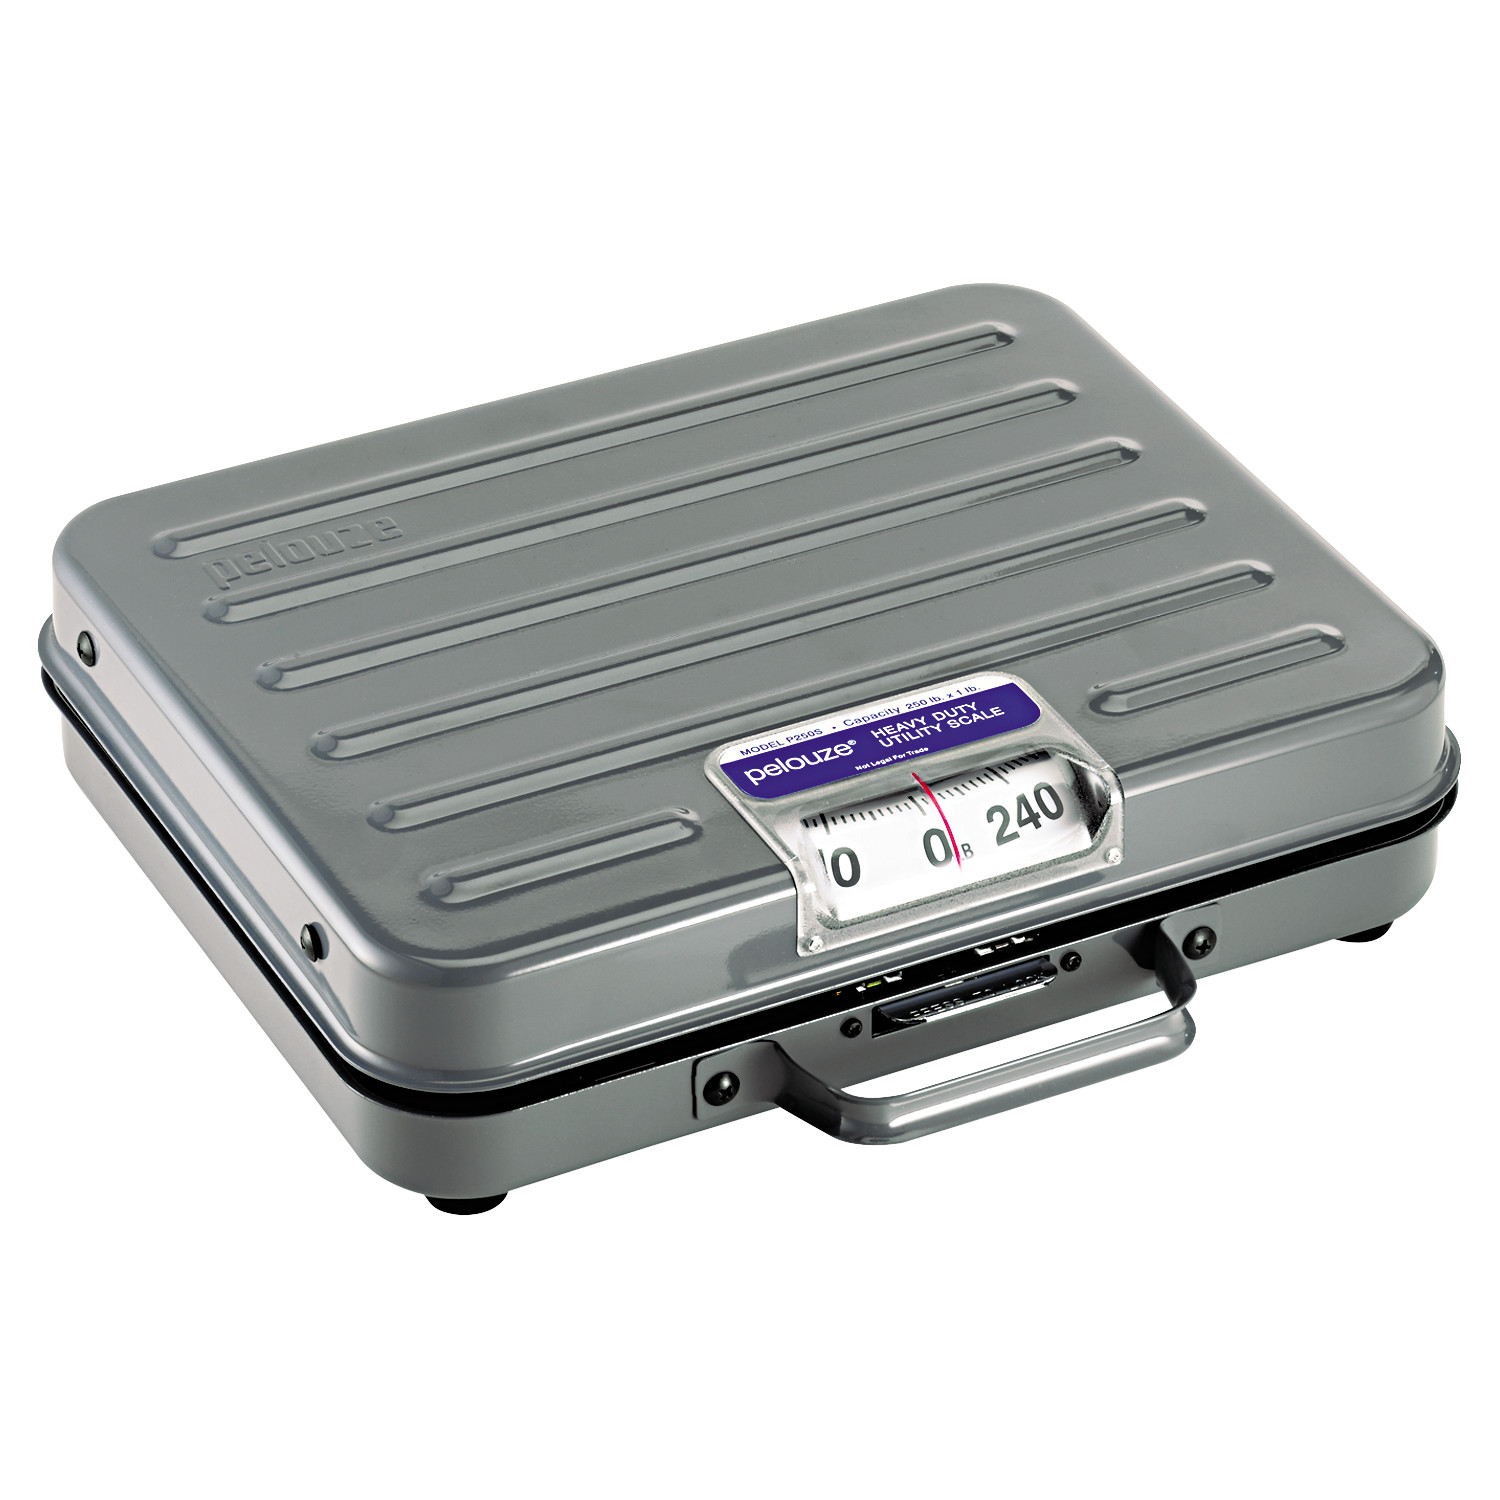 DYMO by Pelouze All-Purpose Mechanical Utility Scale, 250lb Capacity, 10-1/2 x 13-1/4 Platform